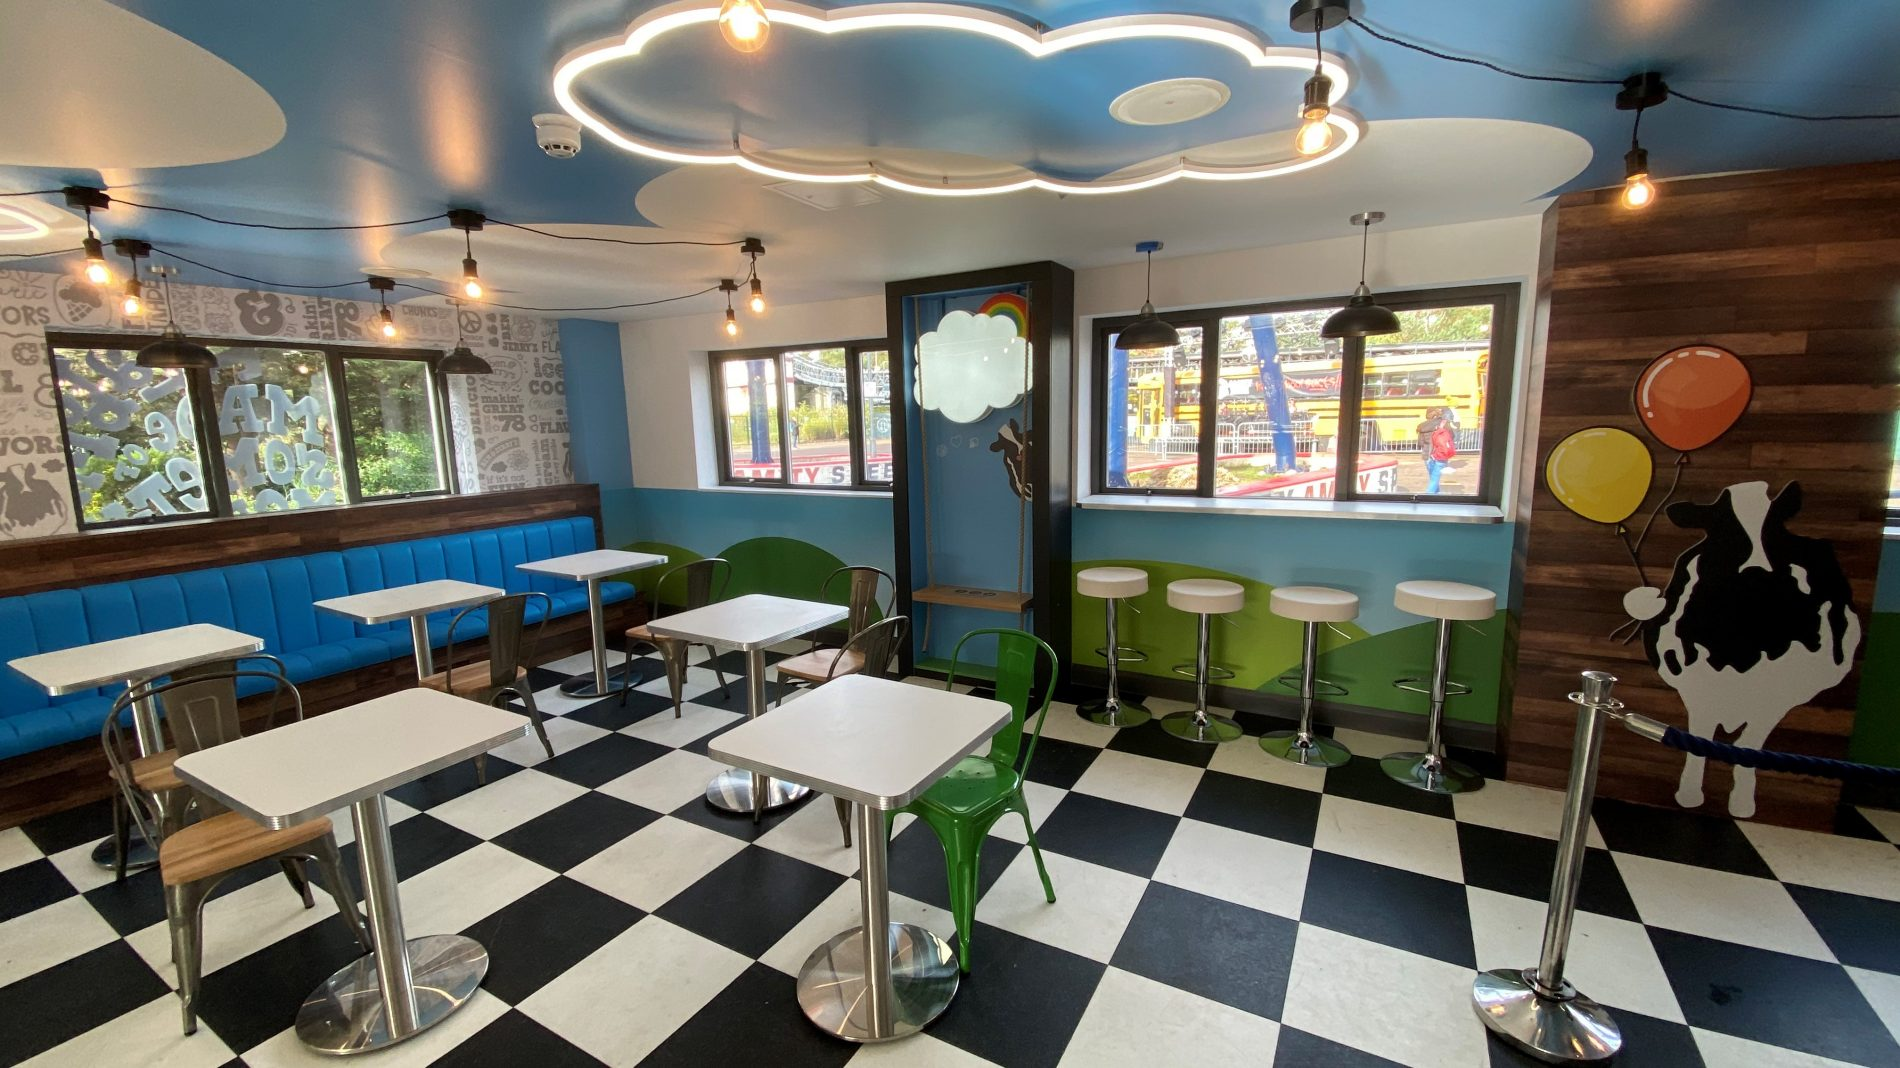 Ben and Jerry's Thorpe Park scoop shop interiors